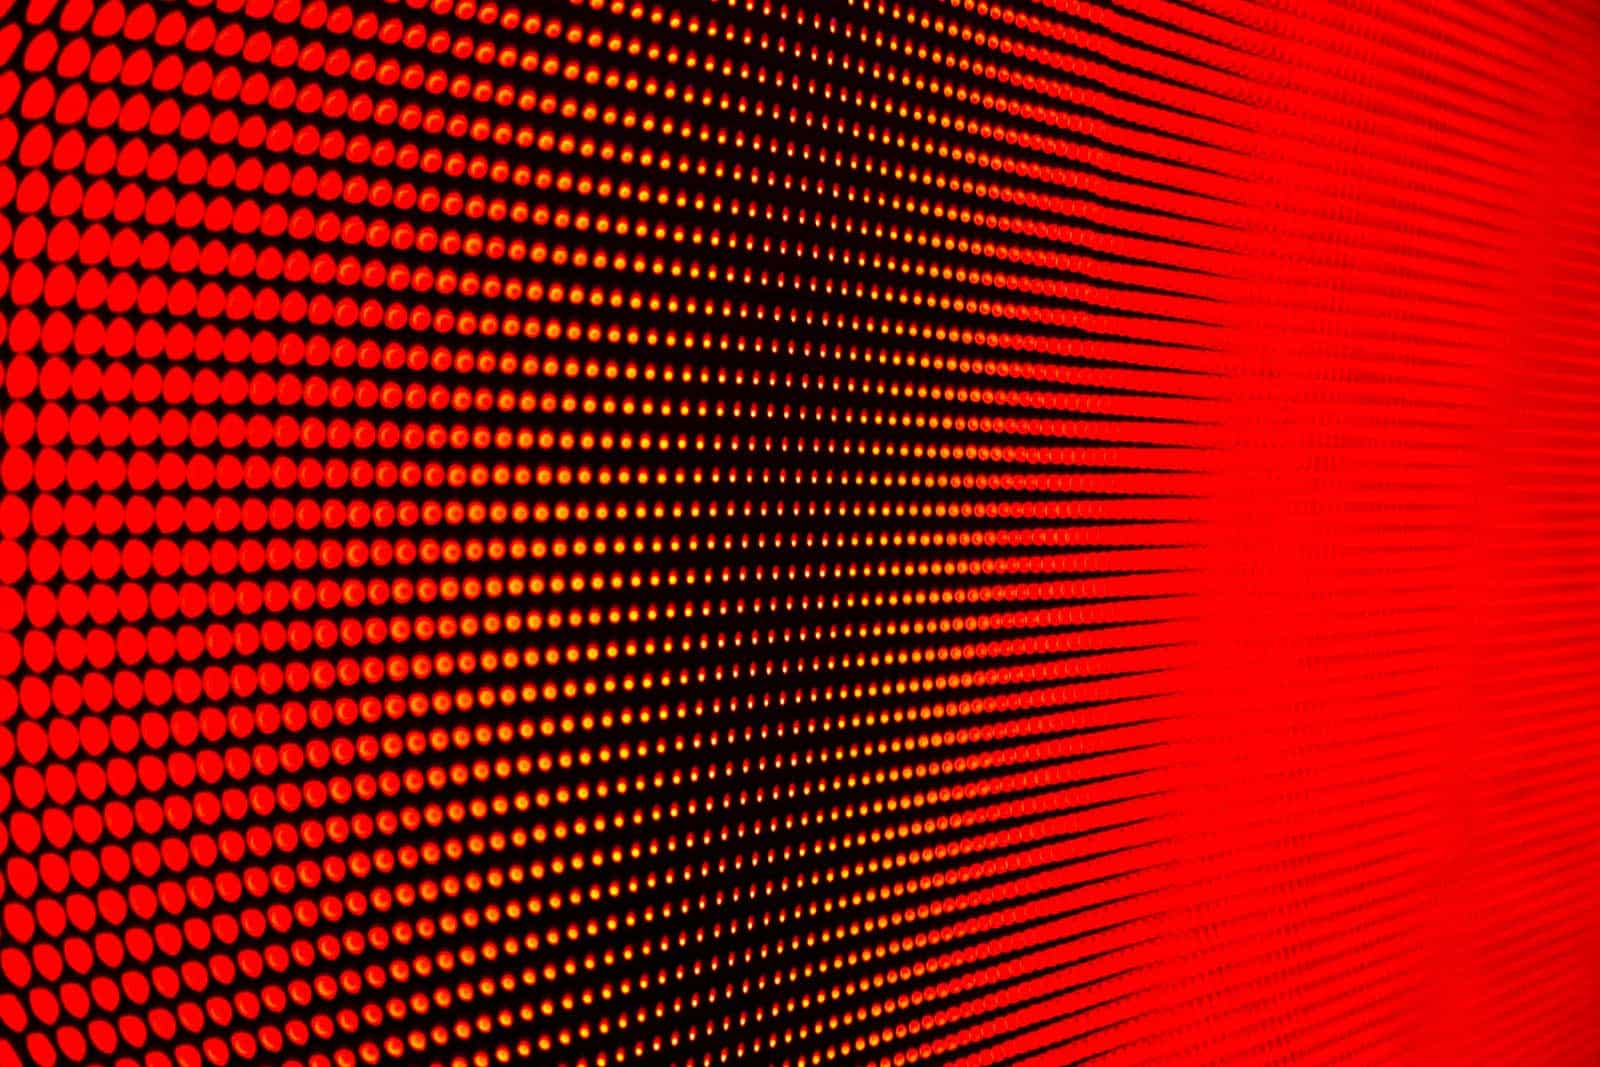 Resolution of red dots on a screen